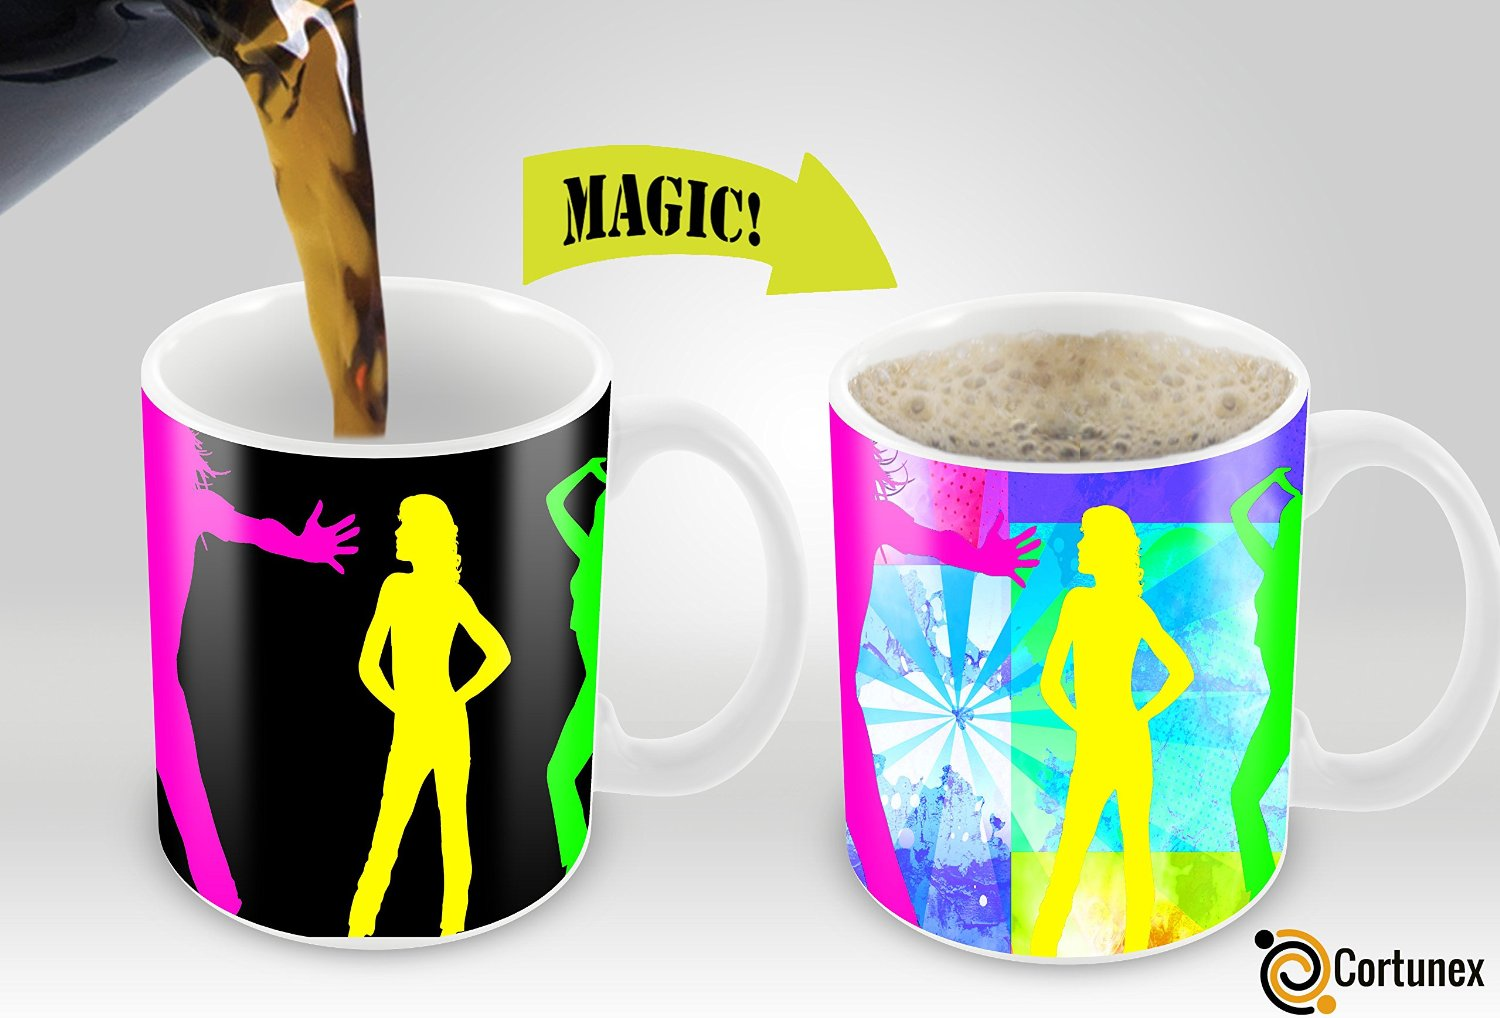 Coffee mugs unique - Variation 603161634444 Of Magic Mugs Amazing New Heat Sensitive Color Changing Coffee Mug Good Unique Gift